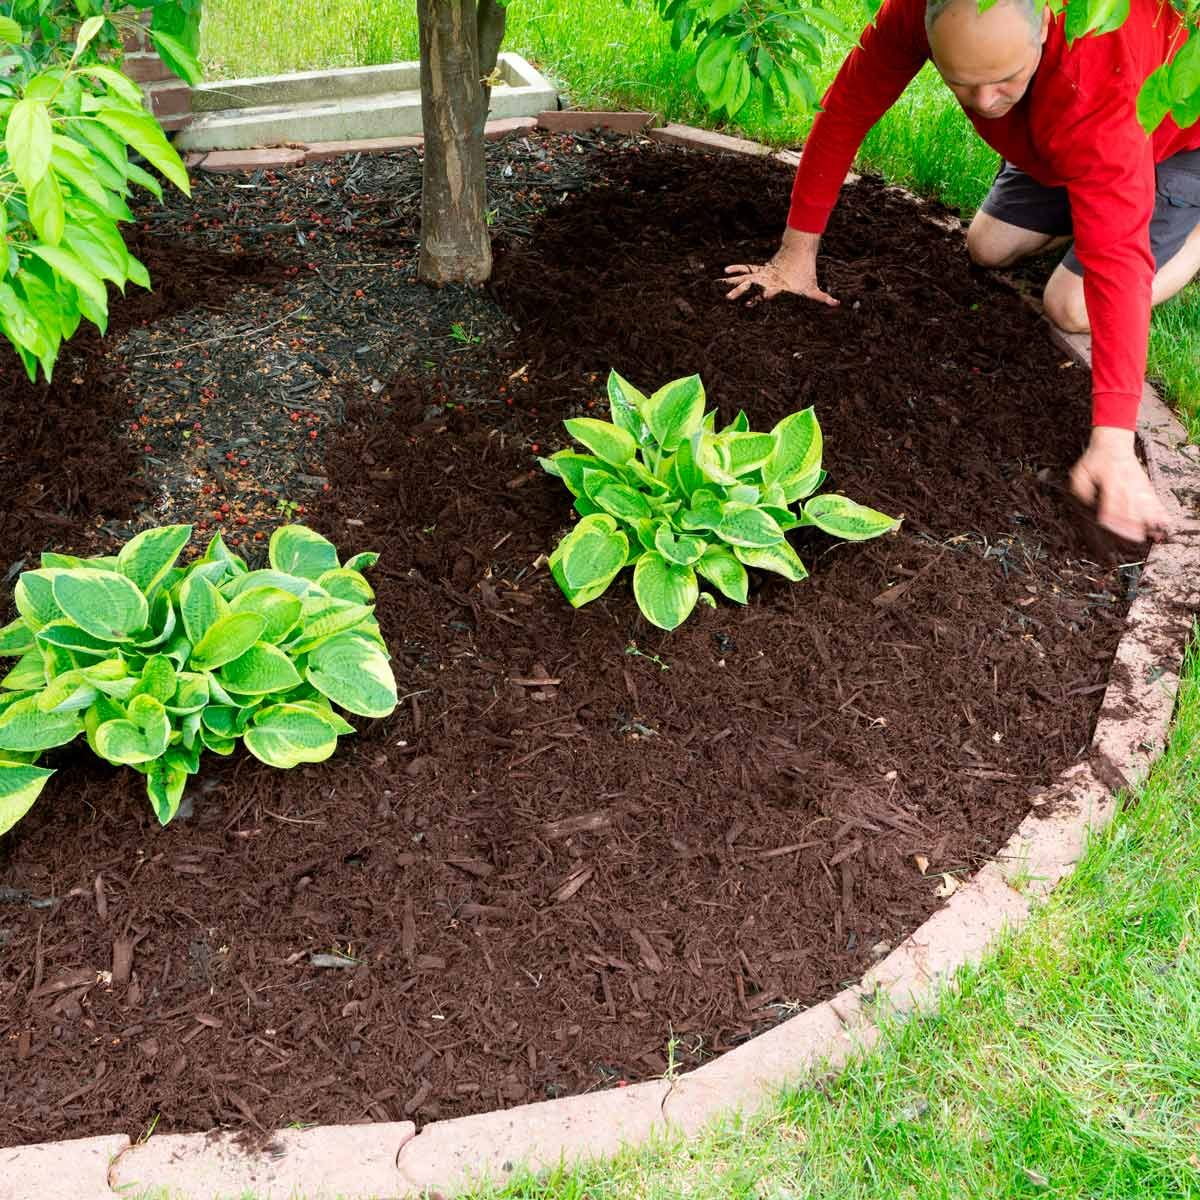 Gardener adds mulch